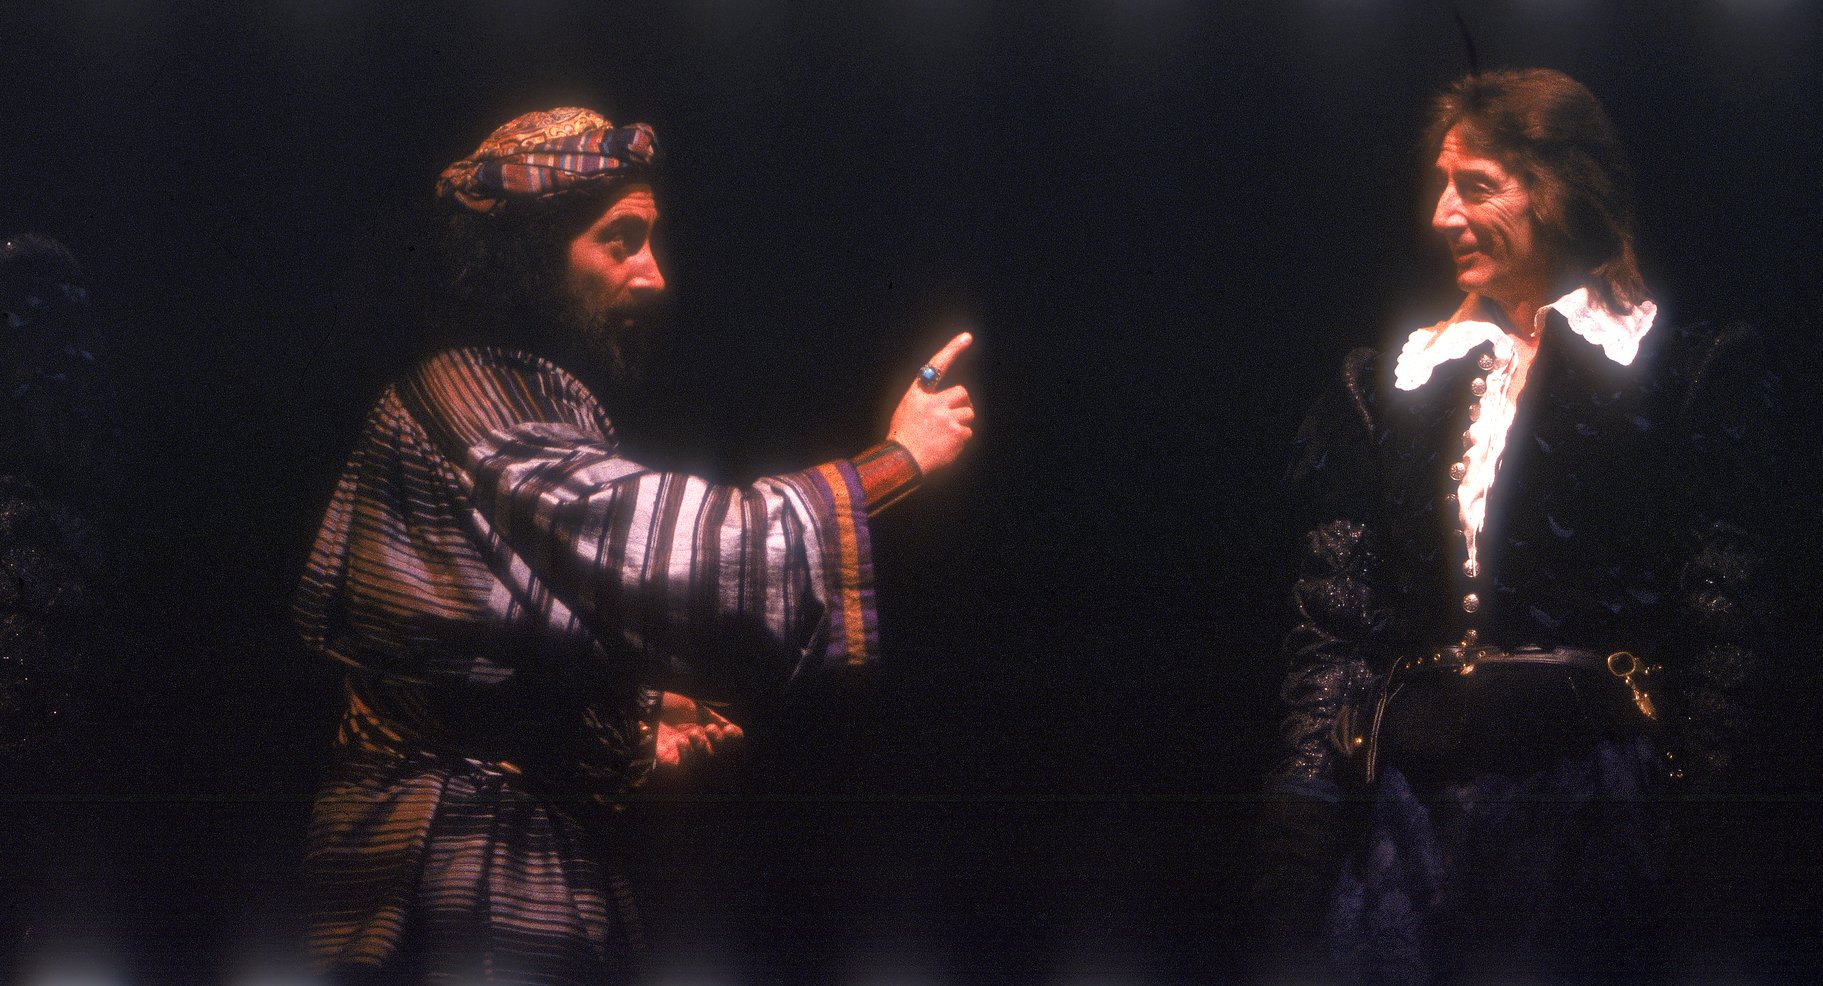 Shylock negotiates a loan with Antonio